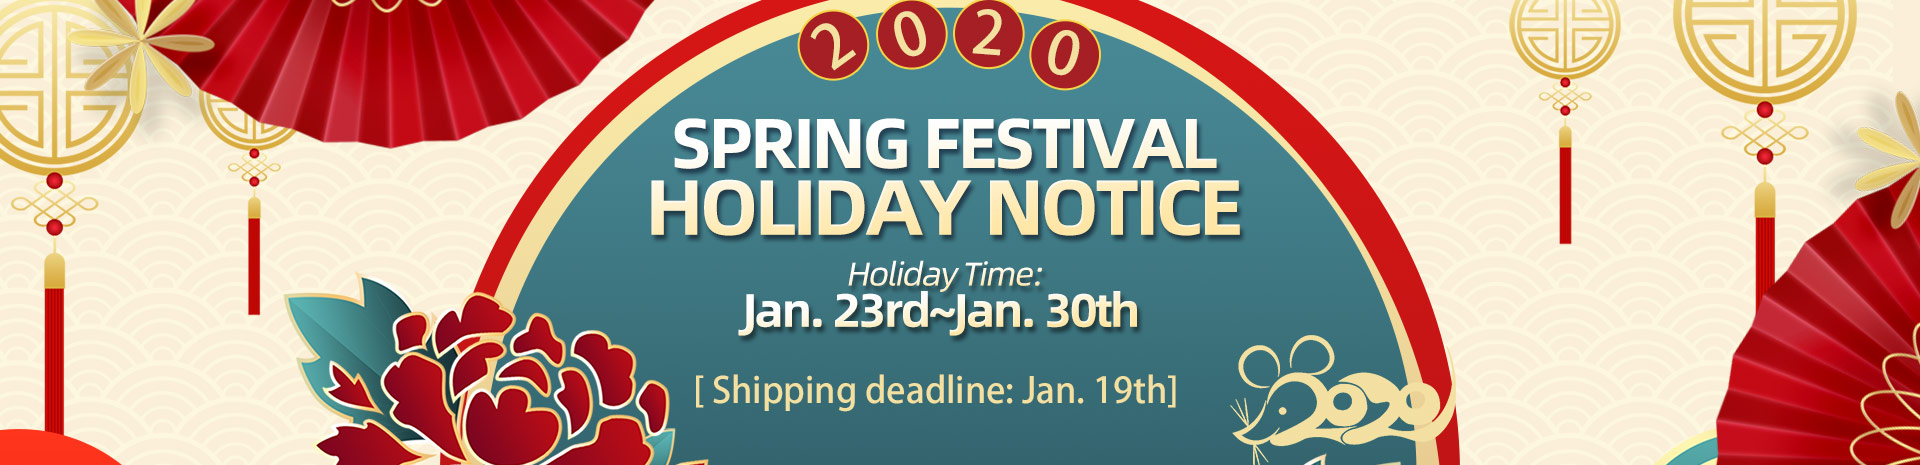 Spring Festival Holiday Notice Banner 3